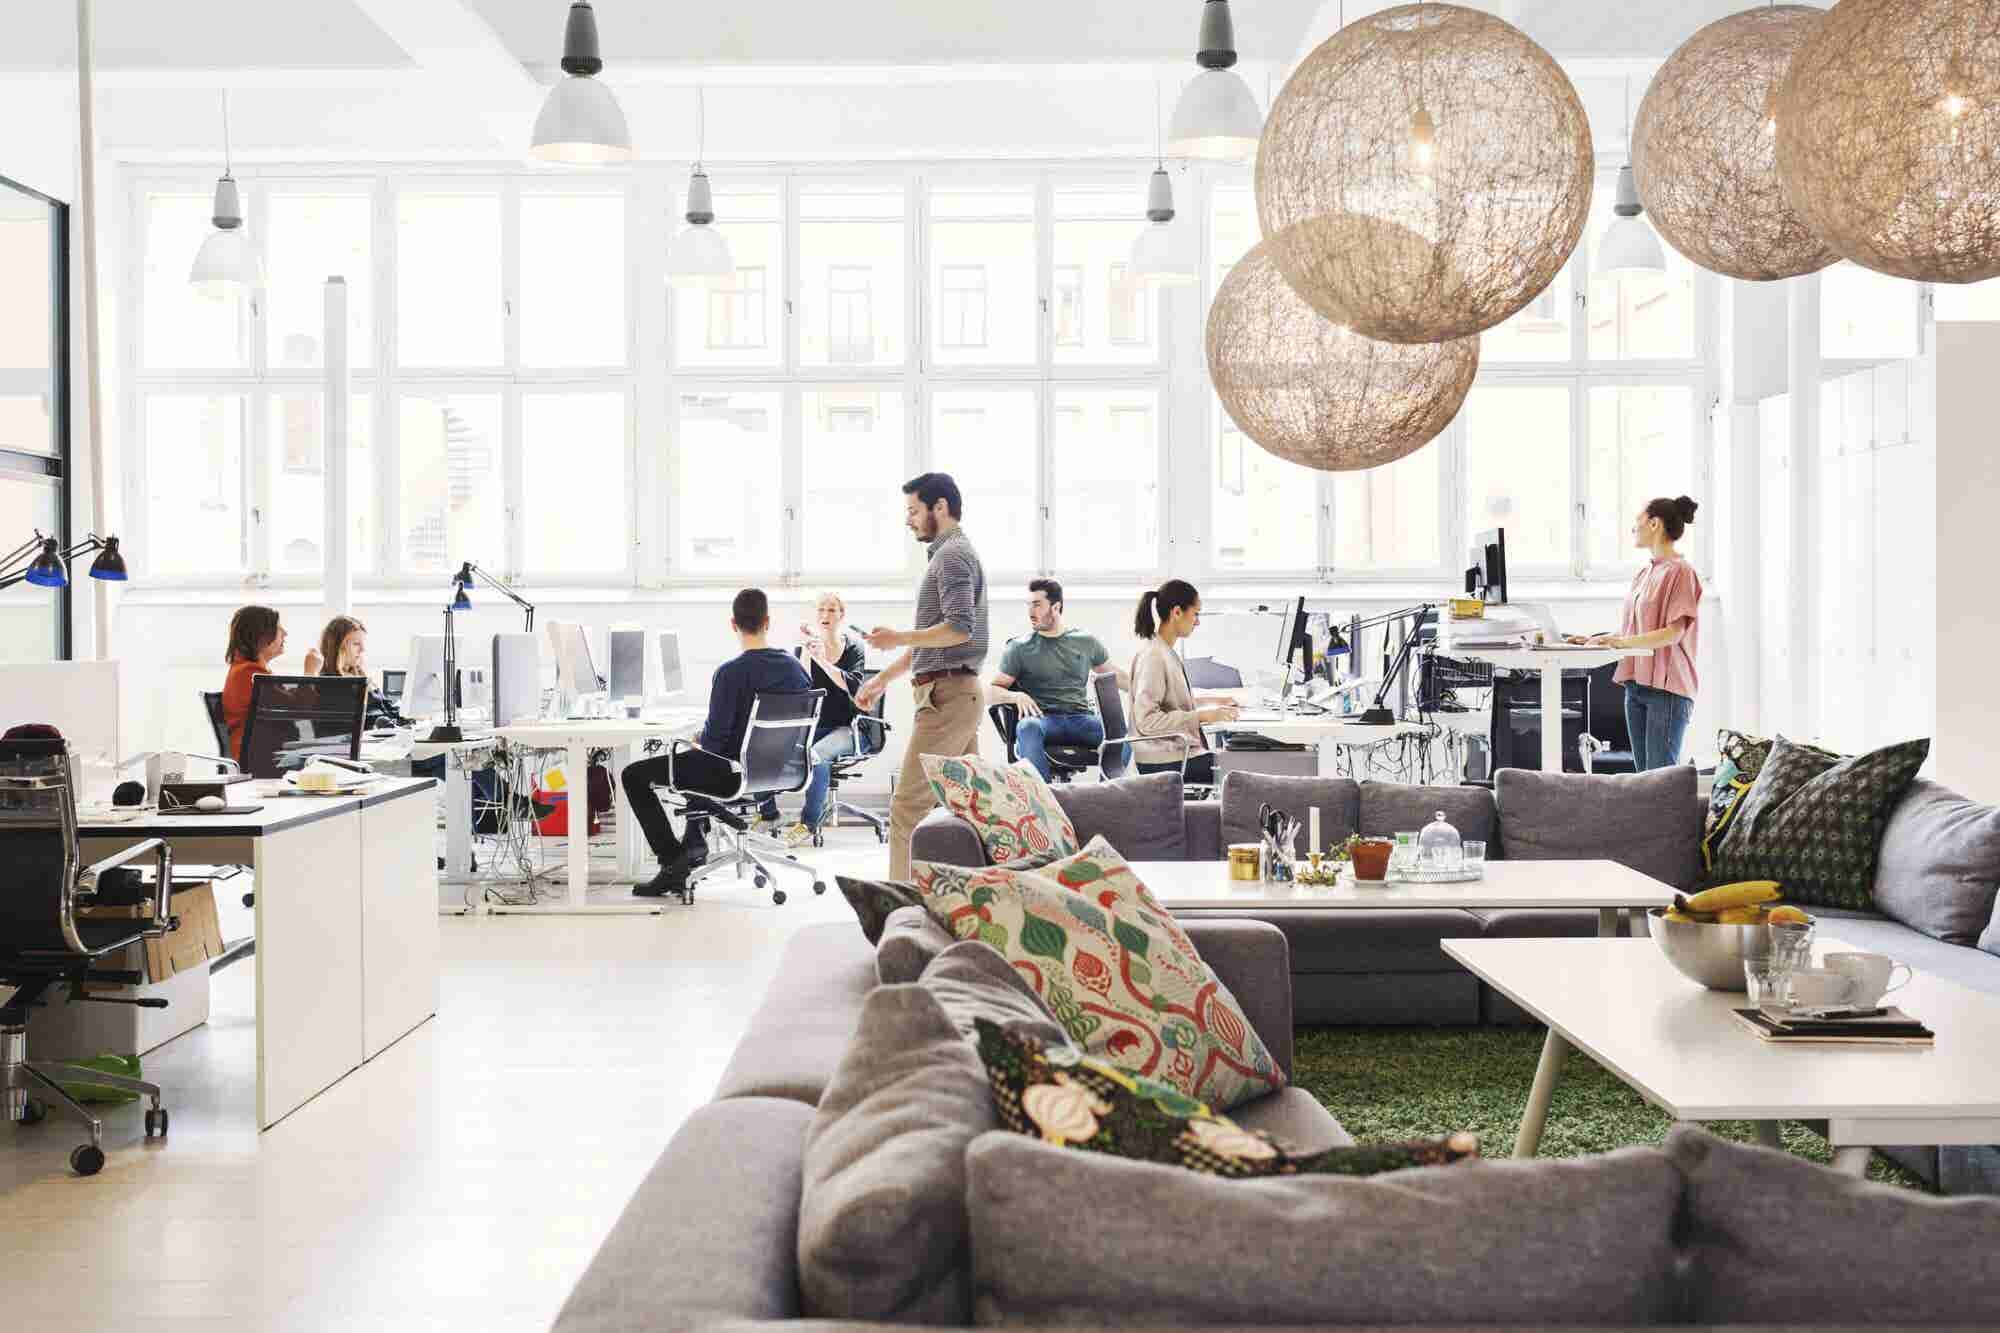 Losing Employees to Competitors? Modern Workspaces Can Help You Keep Them.